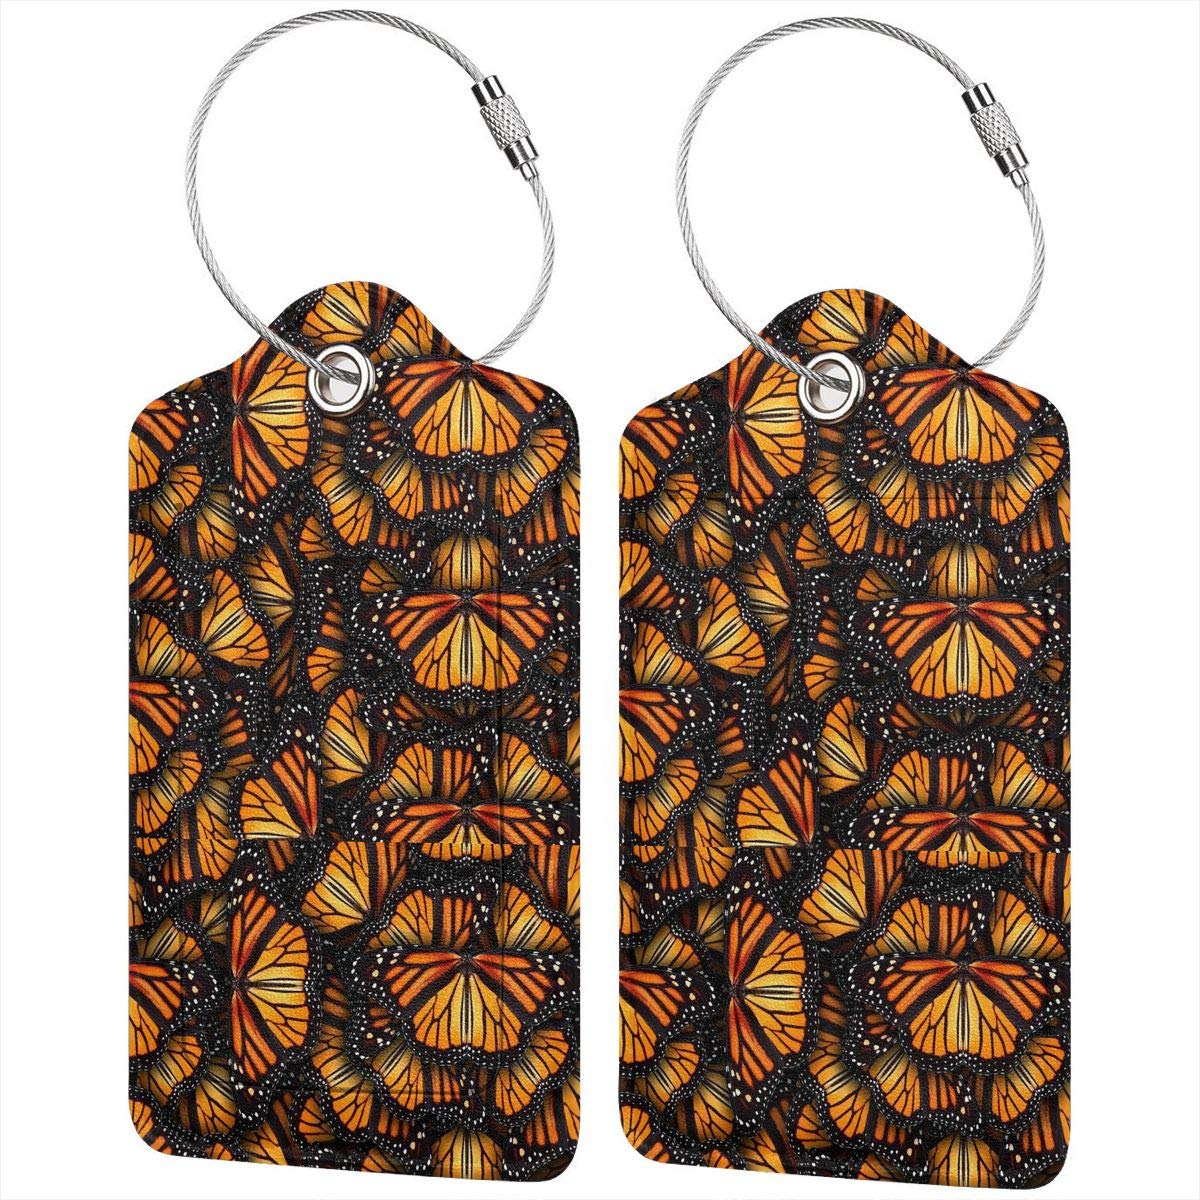 Heaps Of Orange Monarch Butterflies Leather Luggage Tags Personalized Address Card With Privacy Flap